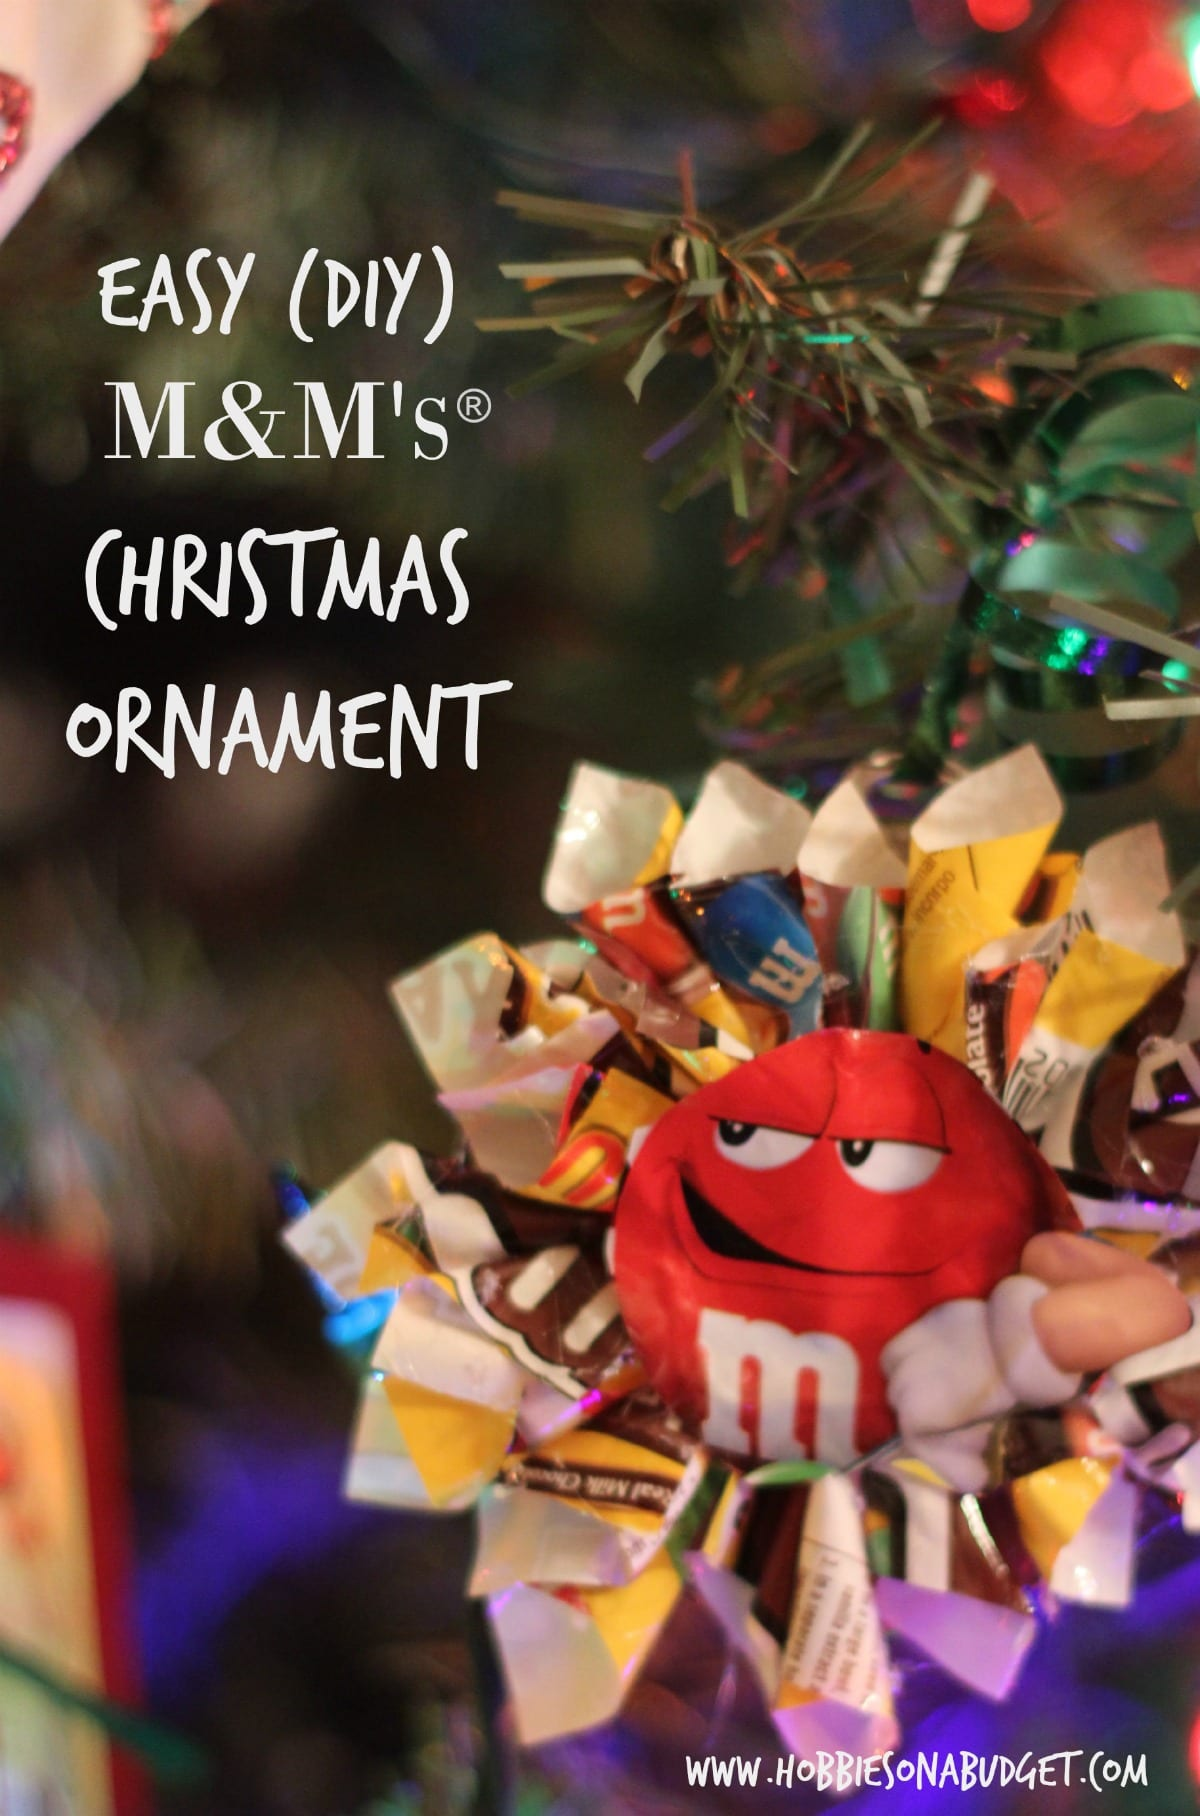 How to Make a Candy Wrapper Christmas Ornament - Hobbies on a Budget